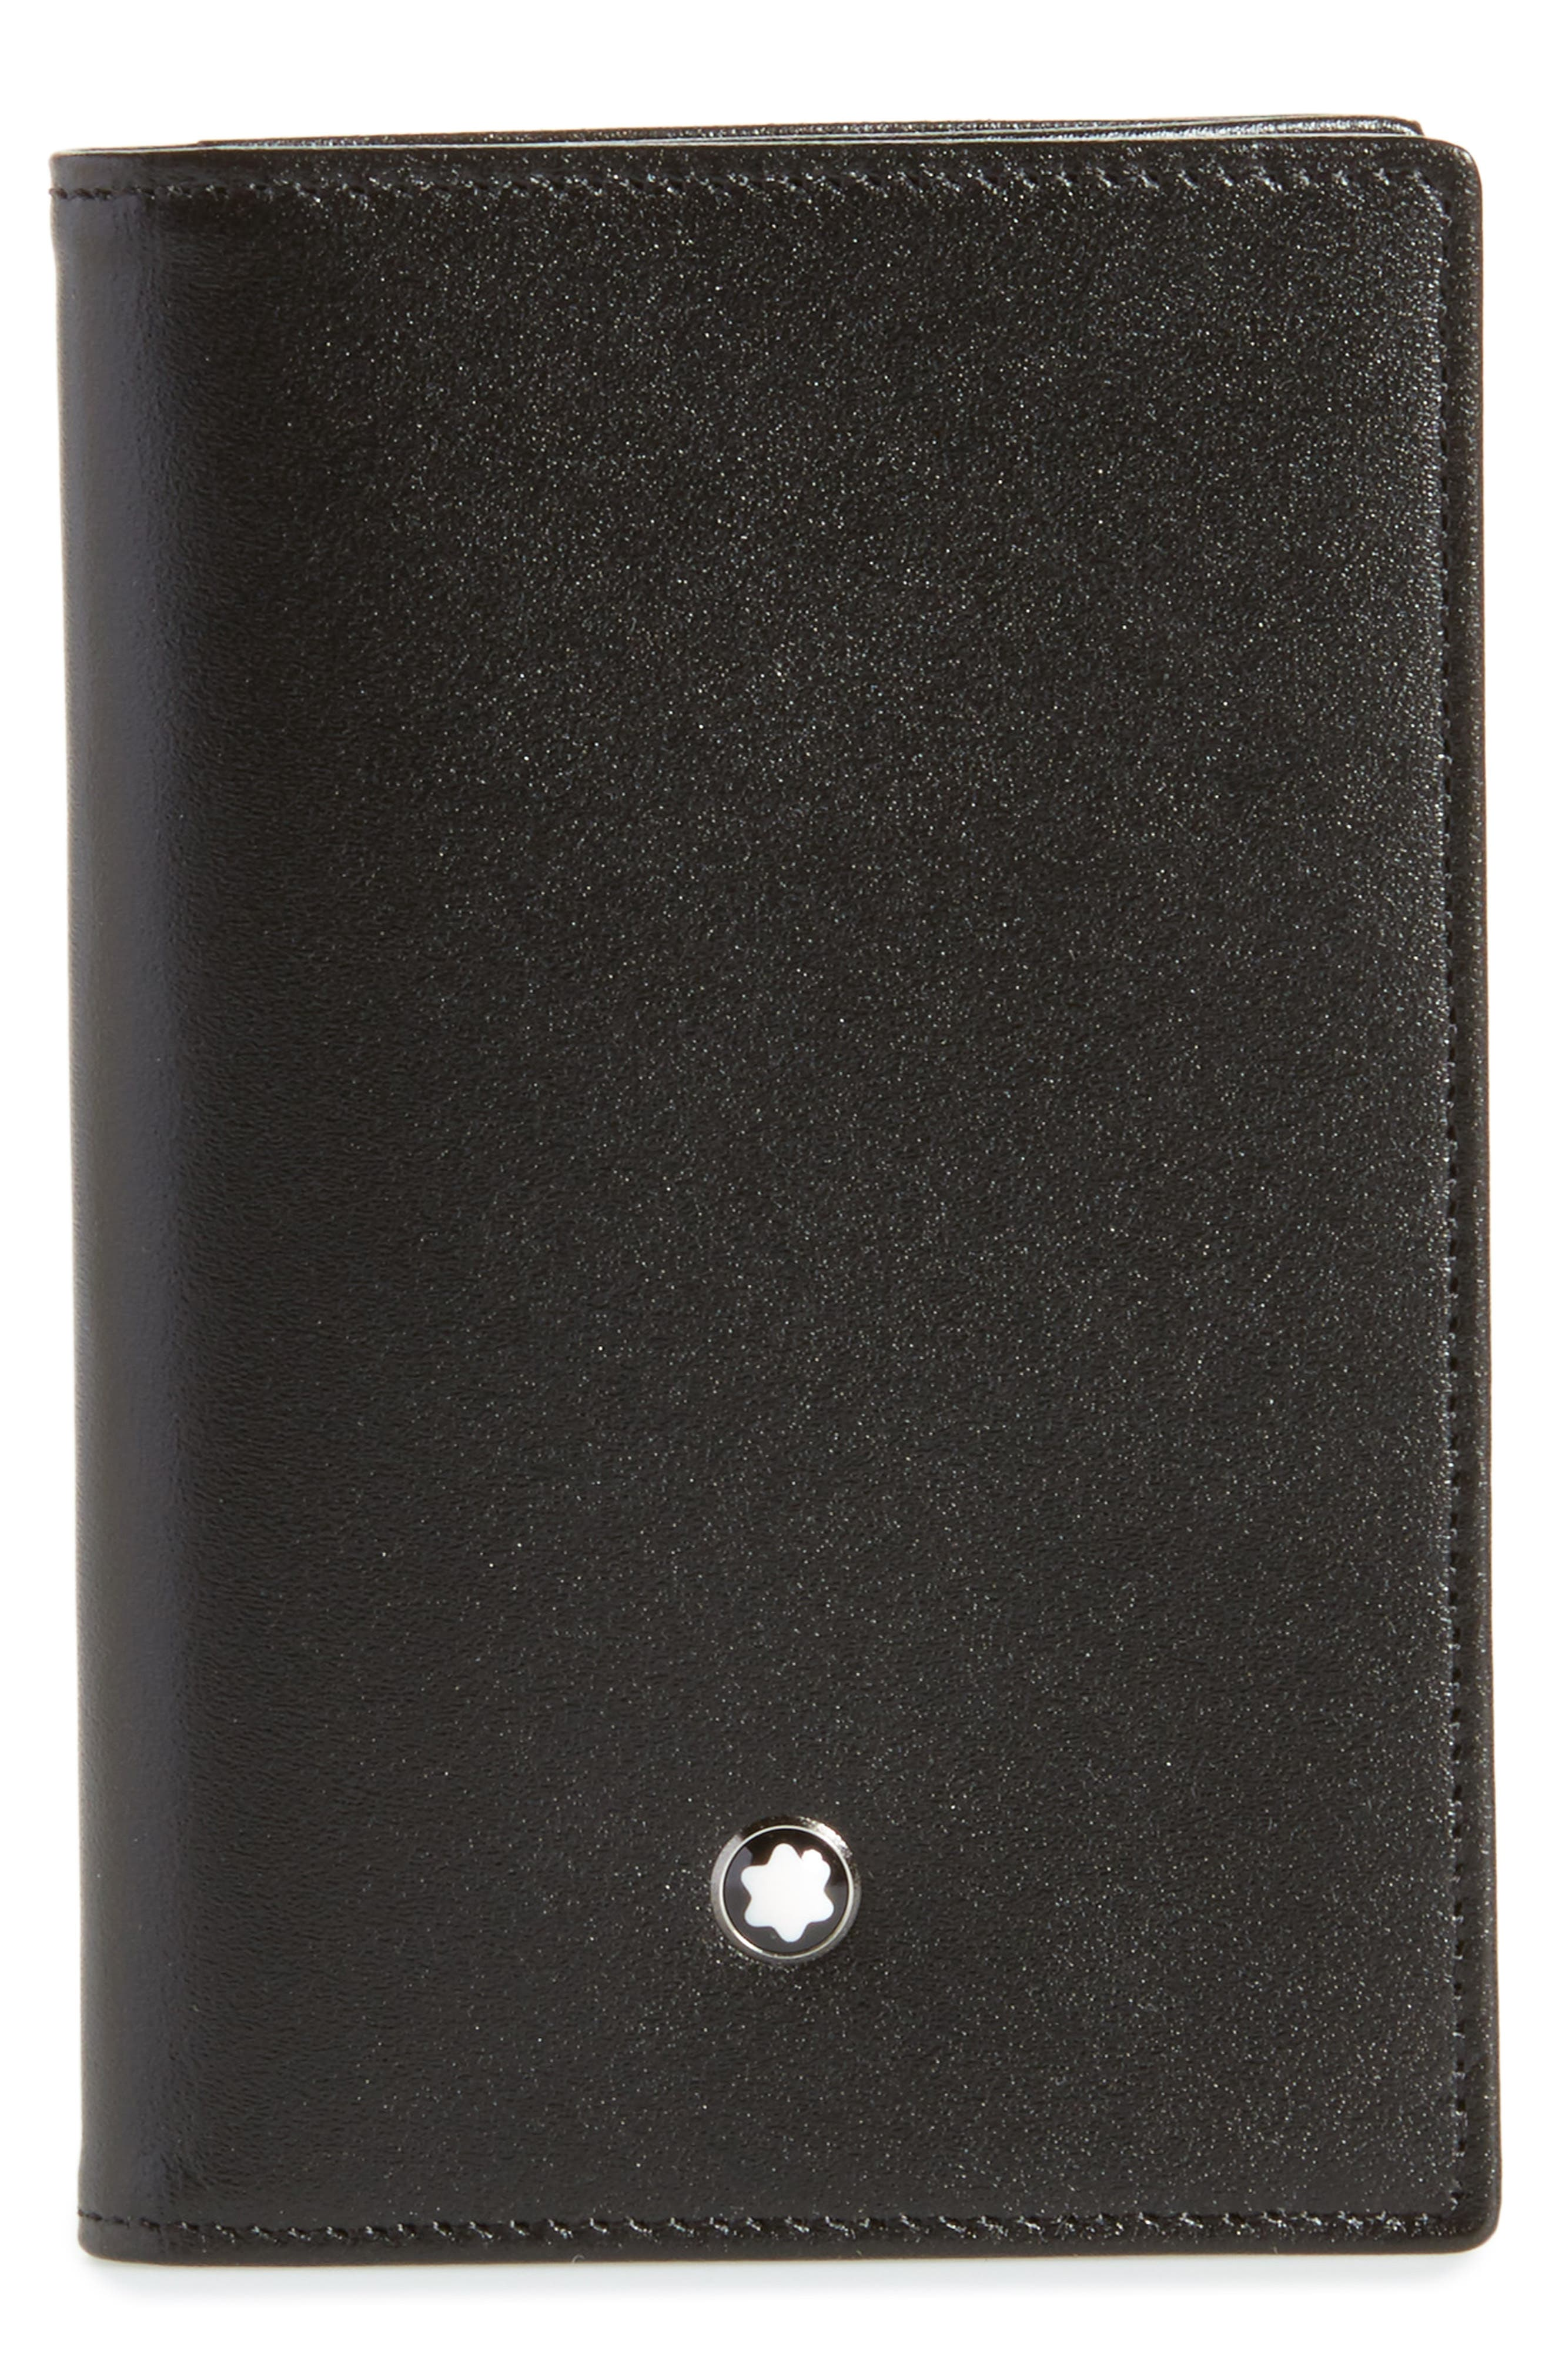 Main Image - MONTBLANC Meisterstück Leather Business Card Case